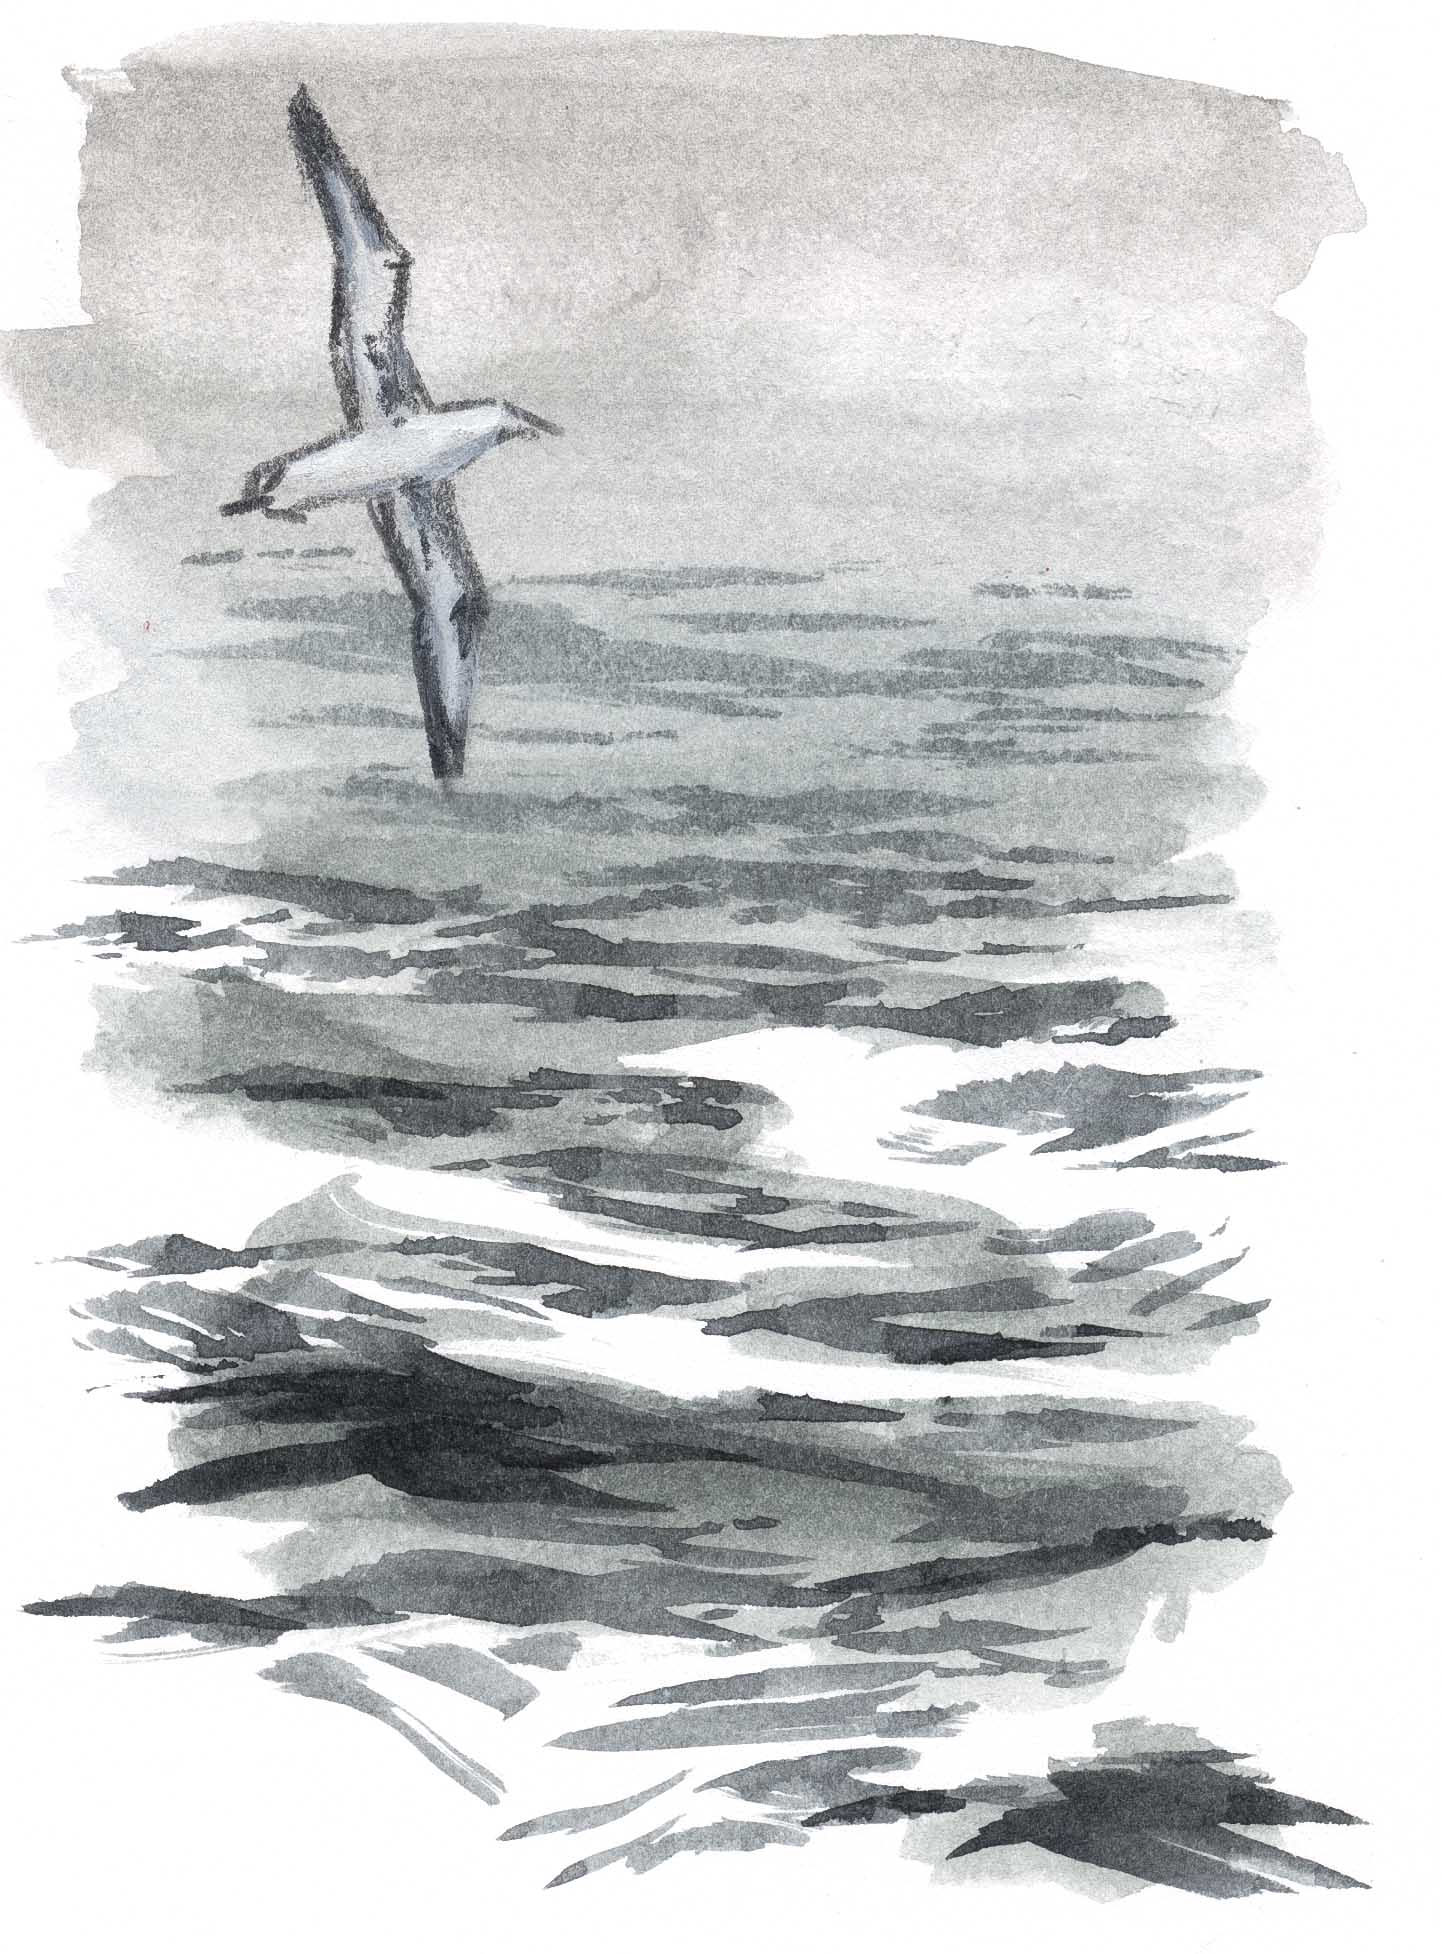 How to draw water open ocean john muir laws using the flat brush cut in darker waves on top of the larger swells lighten the waves in the background by using more diluted paint or by lifting out ccuart Gallery